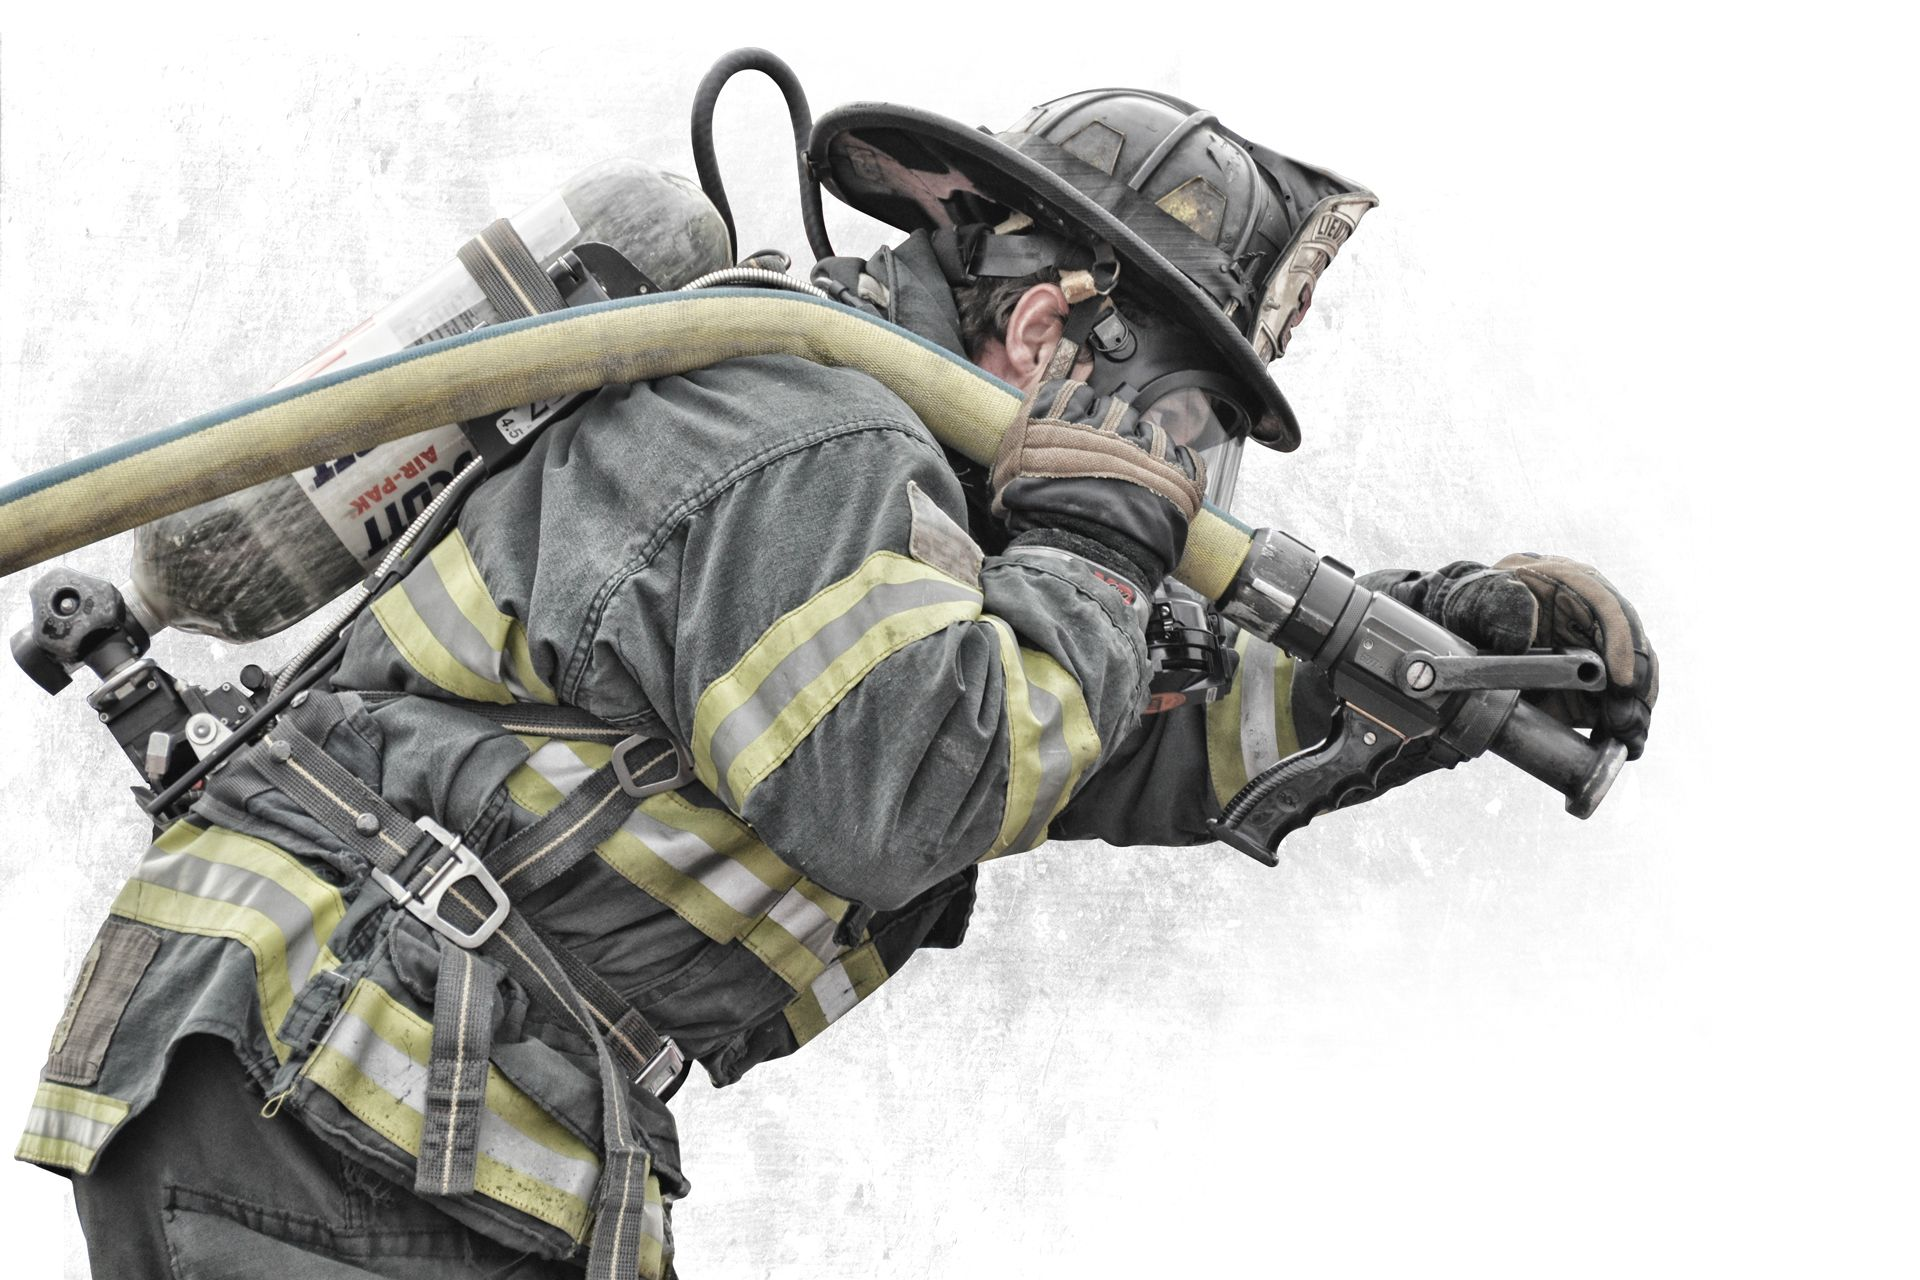 Firefighter Desktop Wallpaper Photos iimgurcom 1920x1280